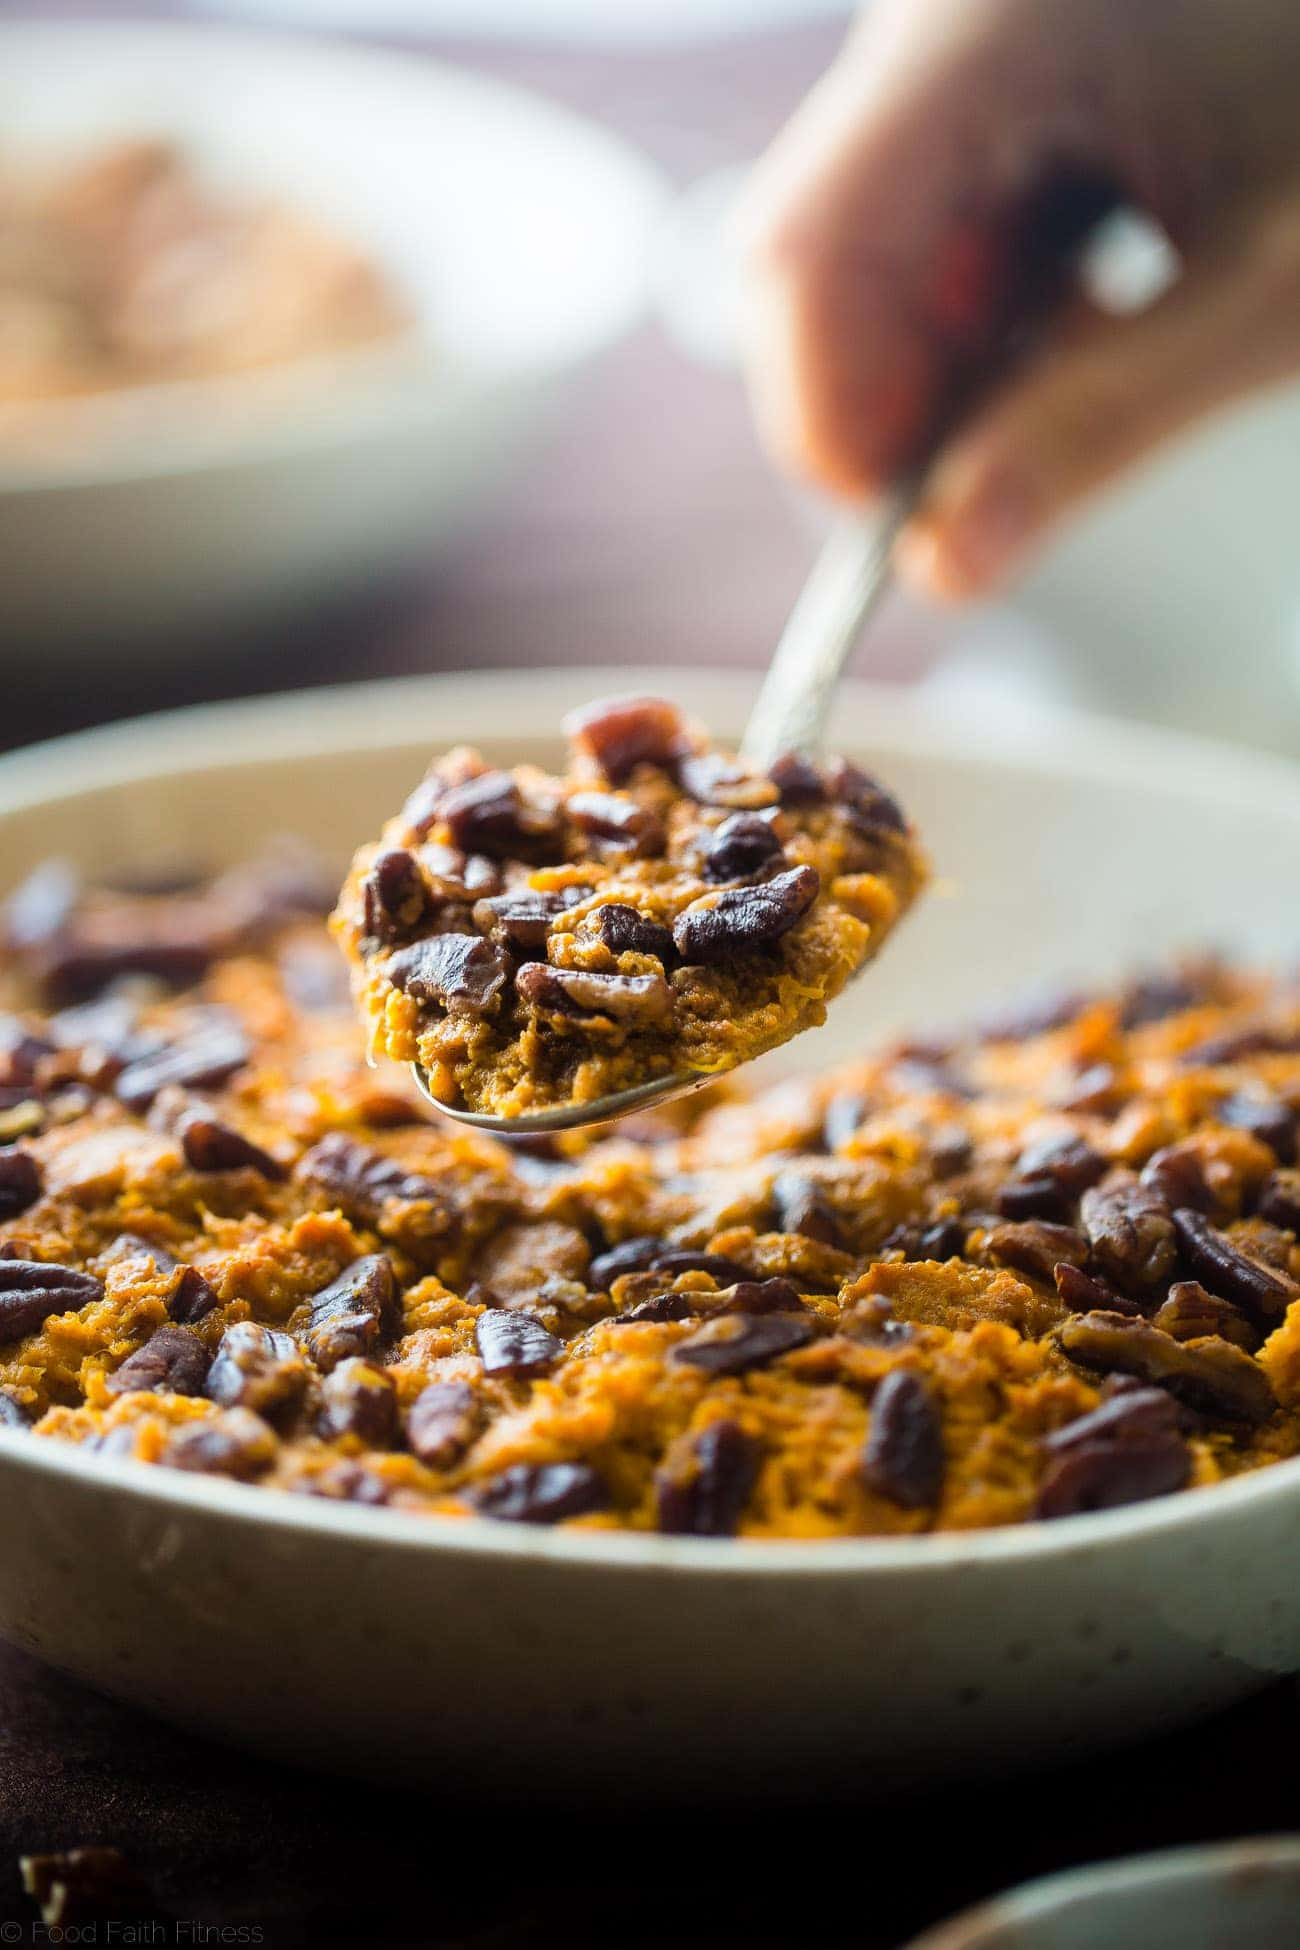 Slow Cooker Paleo Healthy Sweet Potato Casserole - Let the slow cooker do all the work for you this Thanksgiving with this quick and easy paleo sweet potato casserole! You won't even miss the marshmallows! | Foodfaithfitness.com | @FoodFaithFit